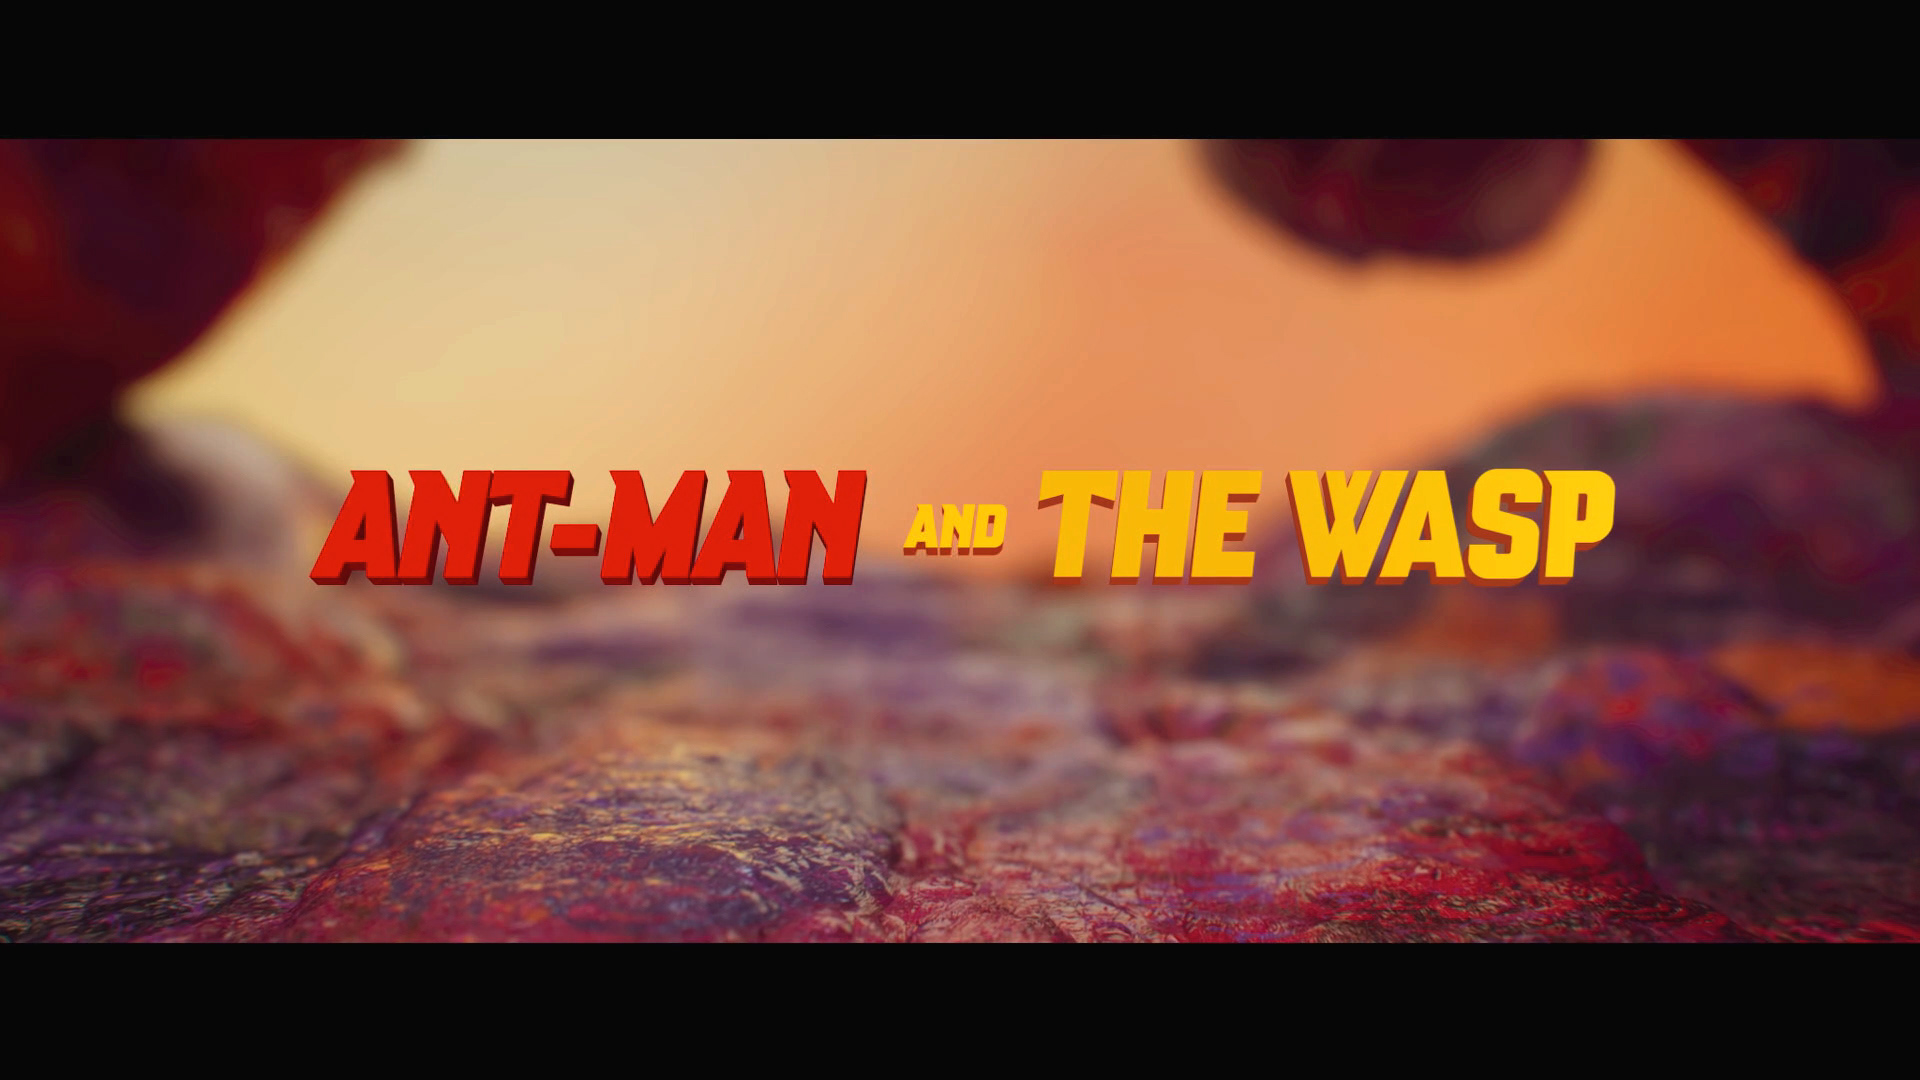 Ant-man and the wasp - Inspiración Volátil Blog